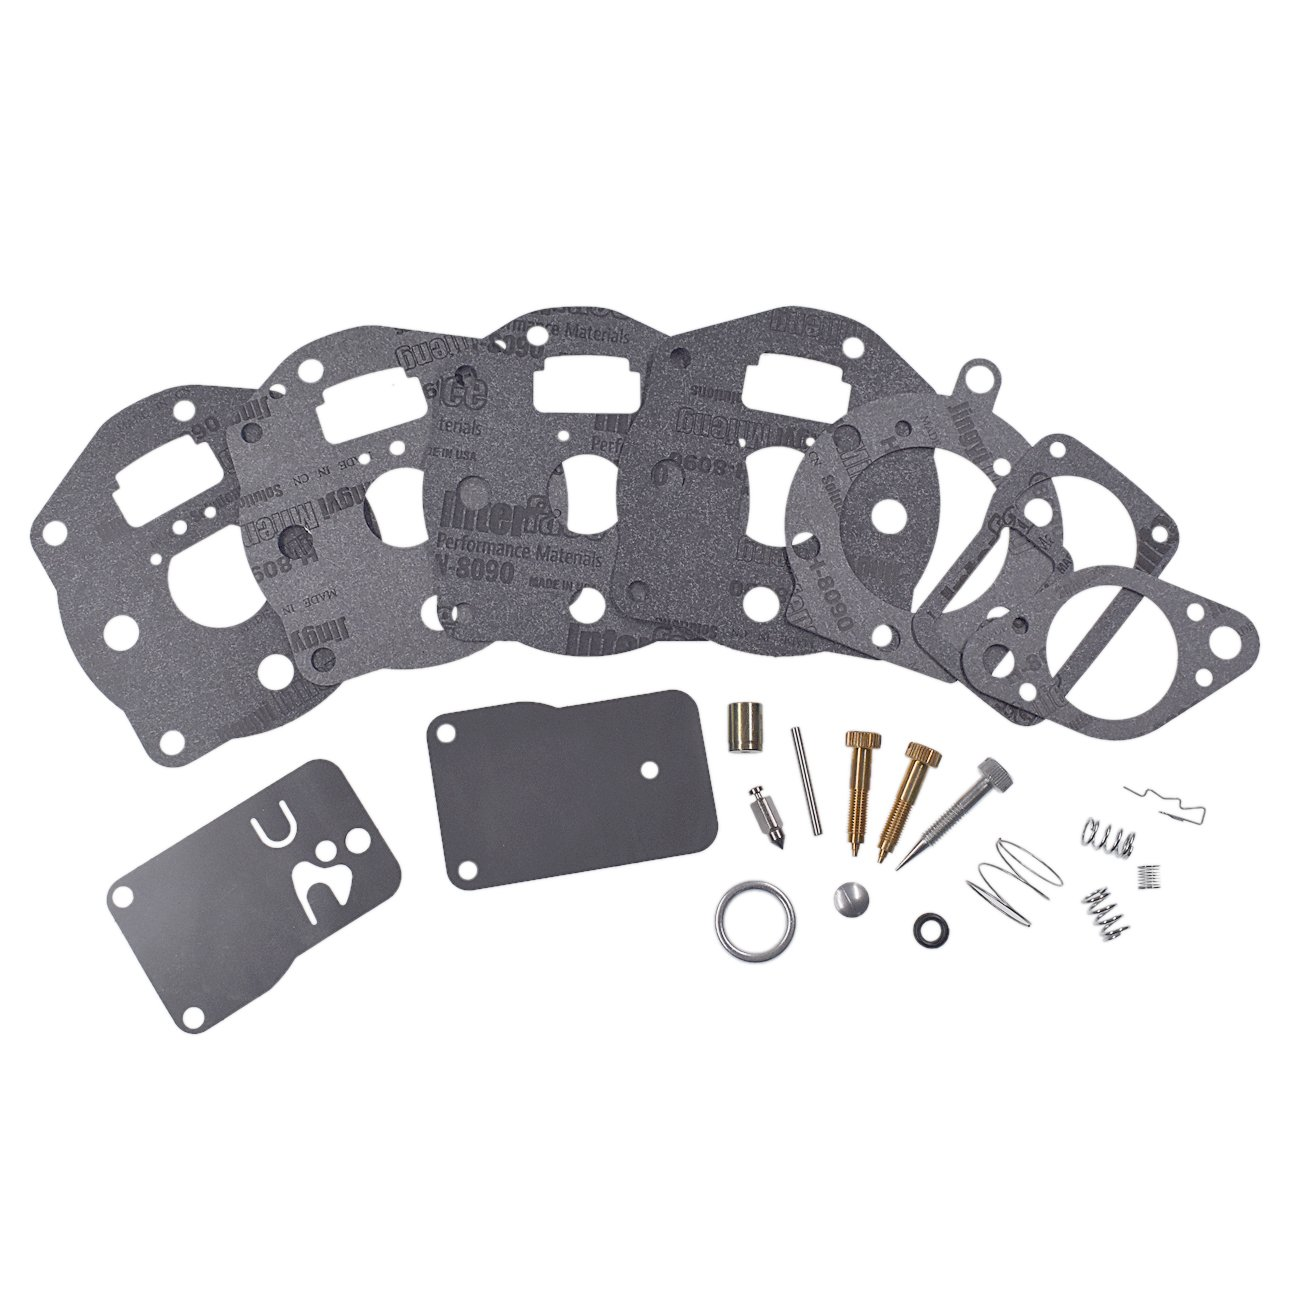 Carburetor Rebuild Kit For Briggs Stratton Models Engine Air Cleaner Parts Model 460707 42e707 42e777 Garden Outdoor